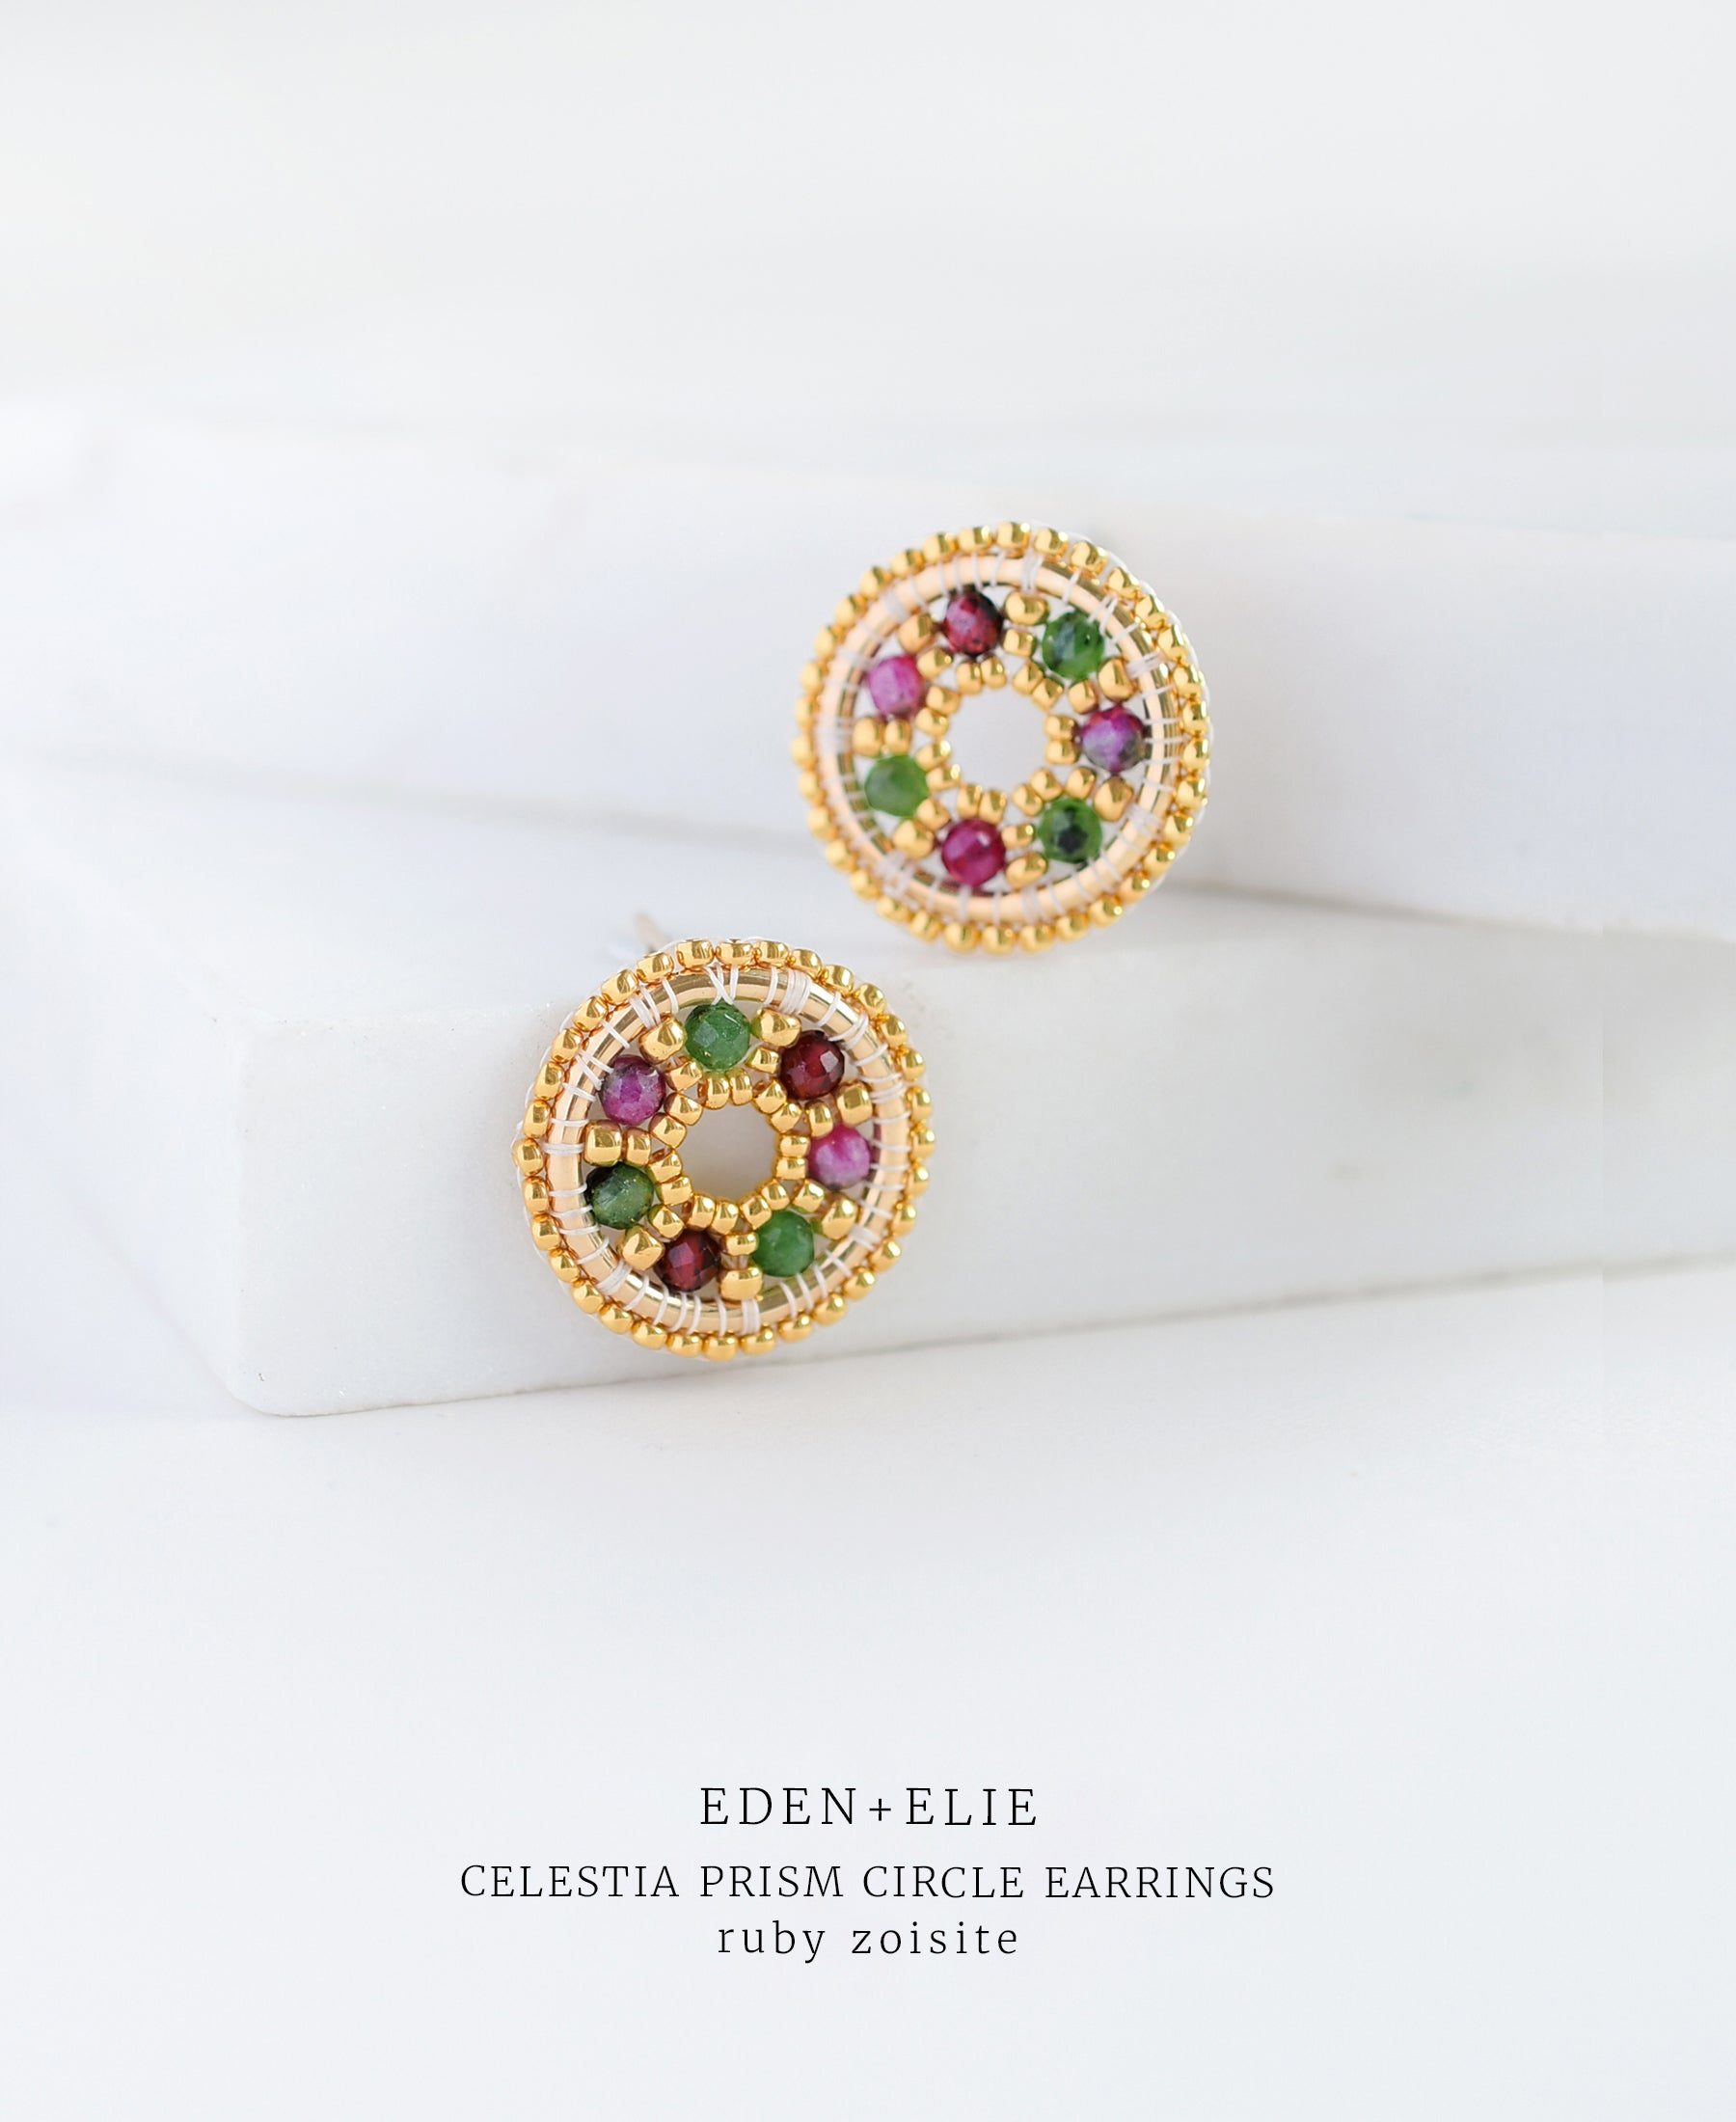 EDEN + ELIE Celestia prism circle earrings - ruby zoisite